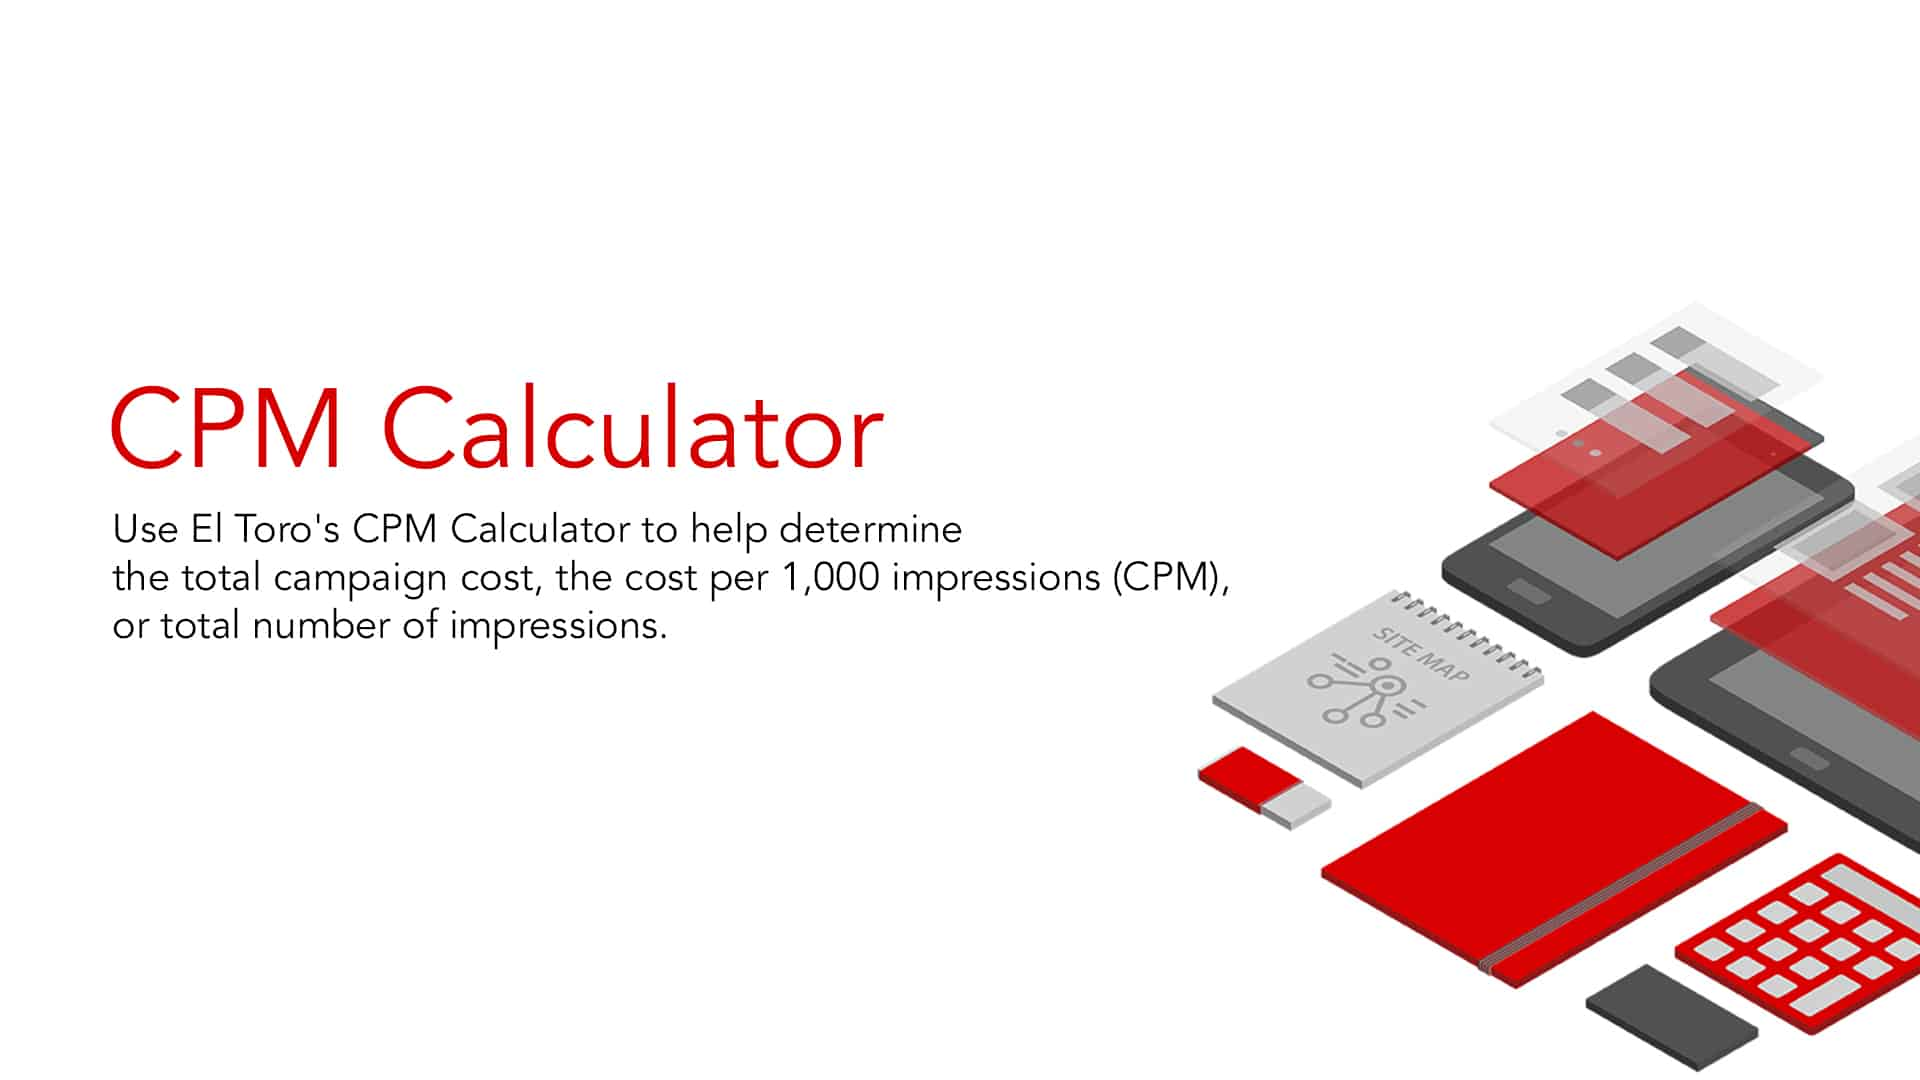 CPM Calculator | Calculate Your CPM With El Toro's Free Calculator